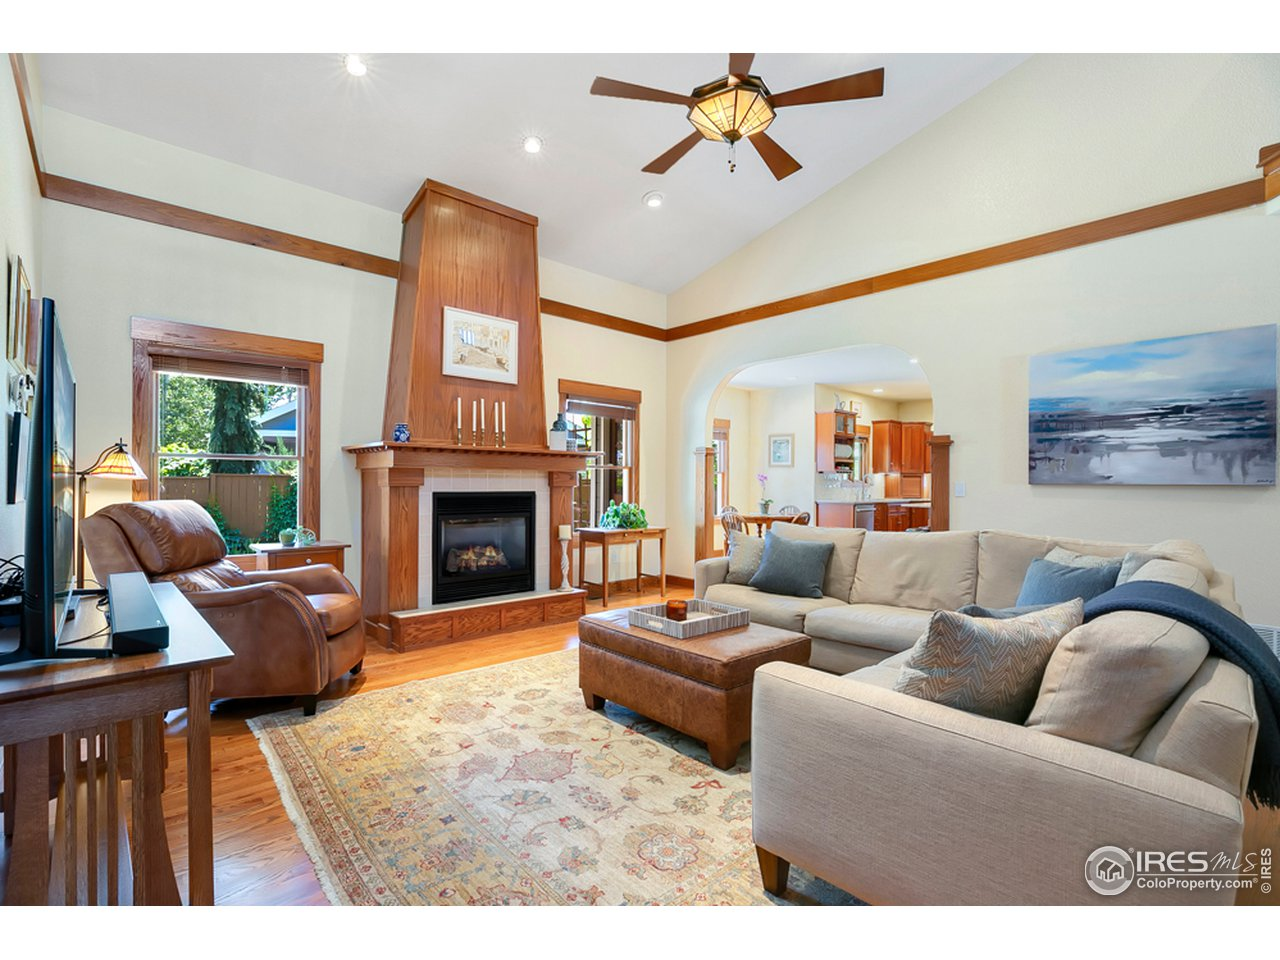 Cozy up to the amazing fireplace in the great room w/ views to the backyard